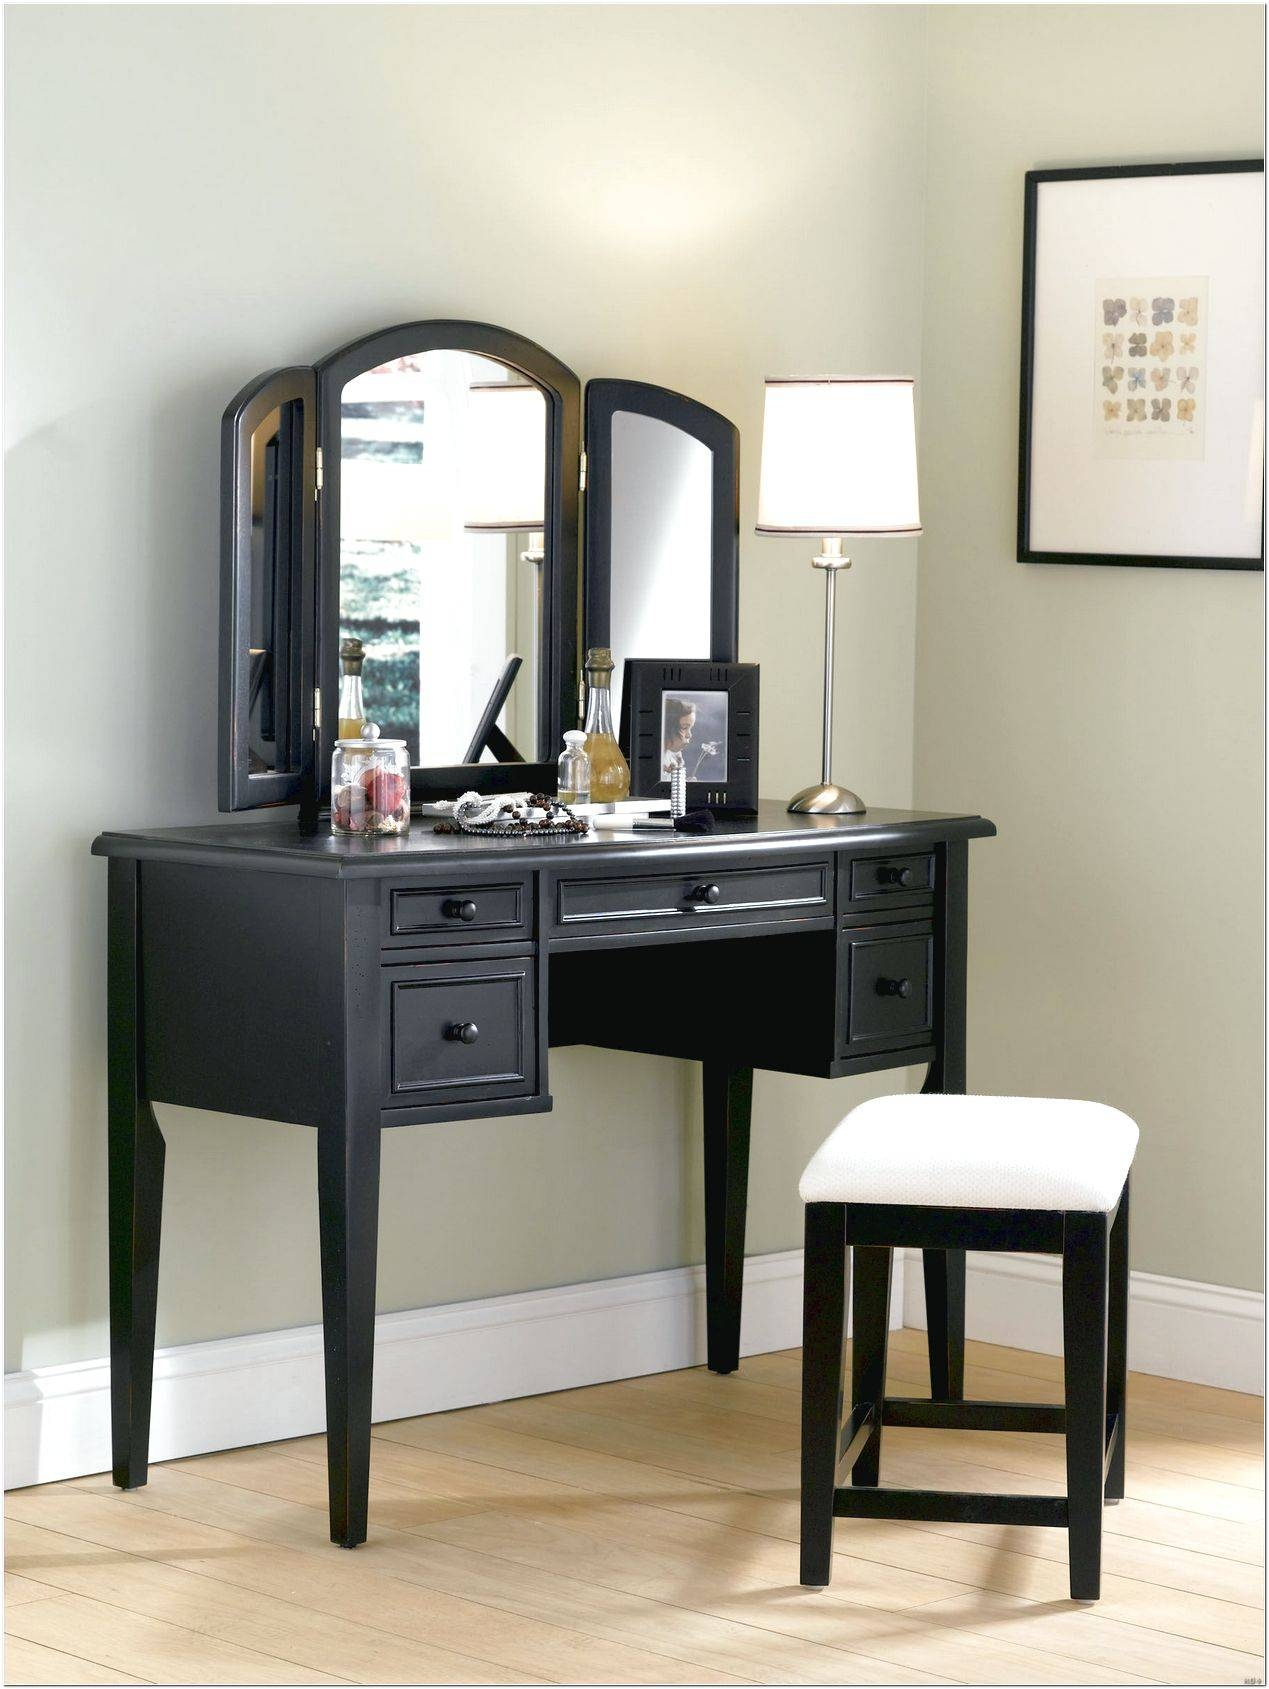 Mirror On Stand For Dressing Table Design Ideas – Interior Design Regarding Mirrors On Stand For Dressing Table (View 12 of 15)